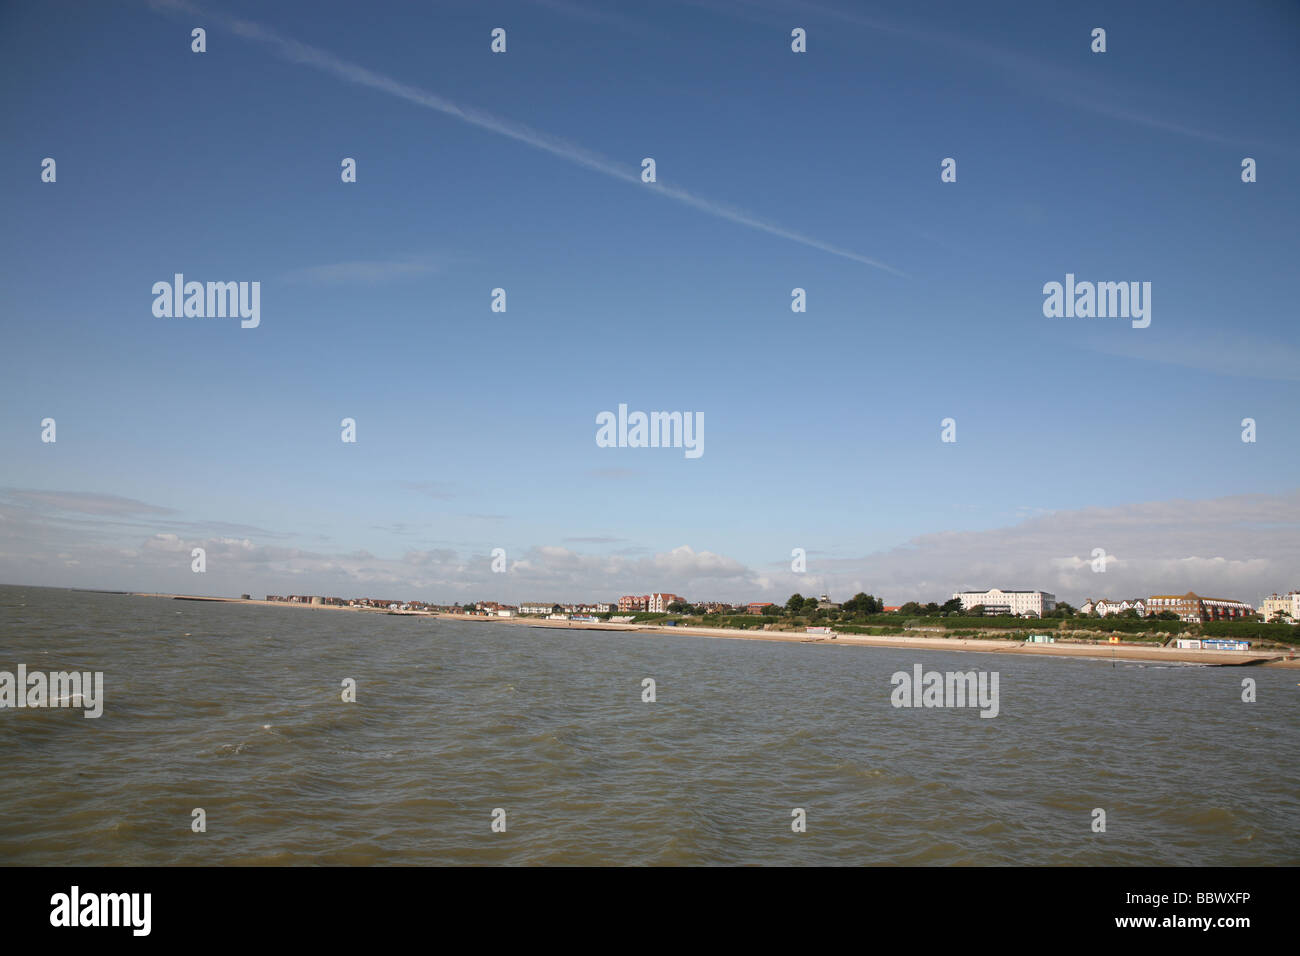 Clacton beach and seafront buildings - Stock Image